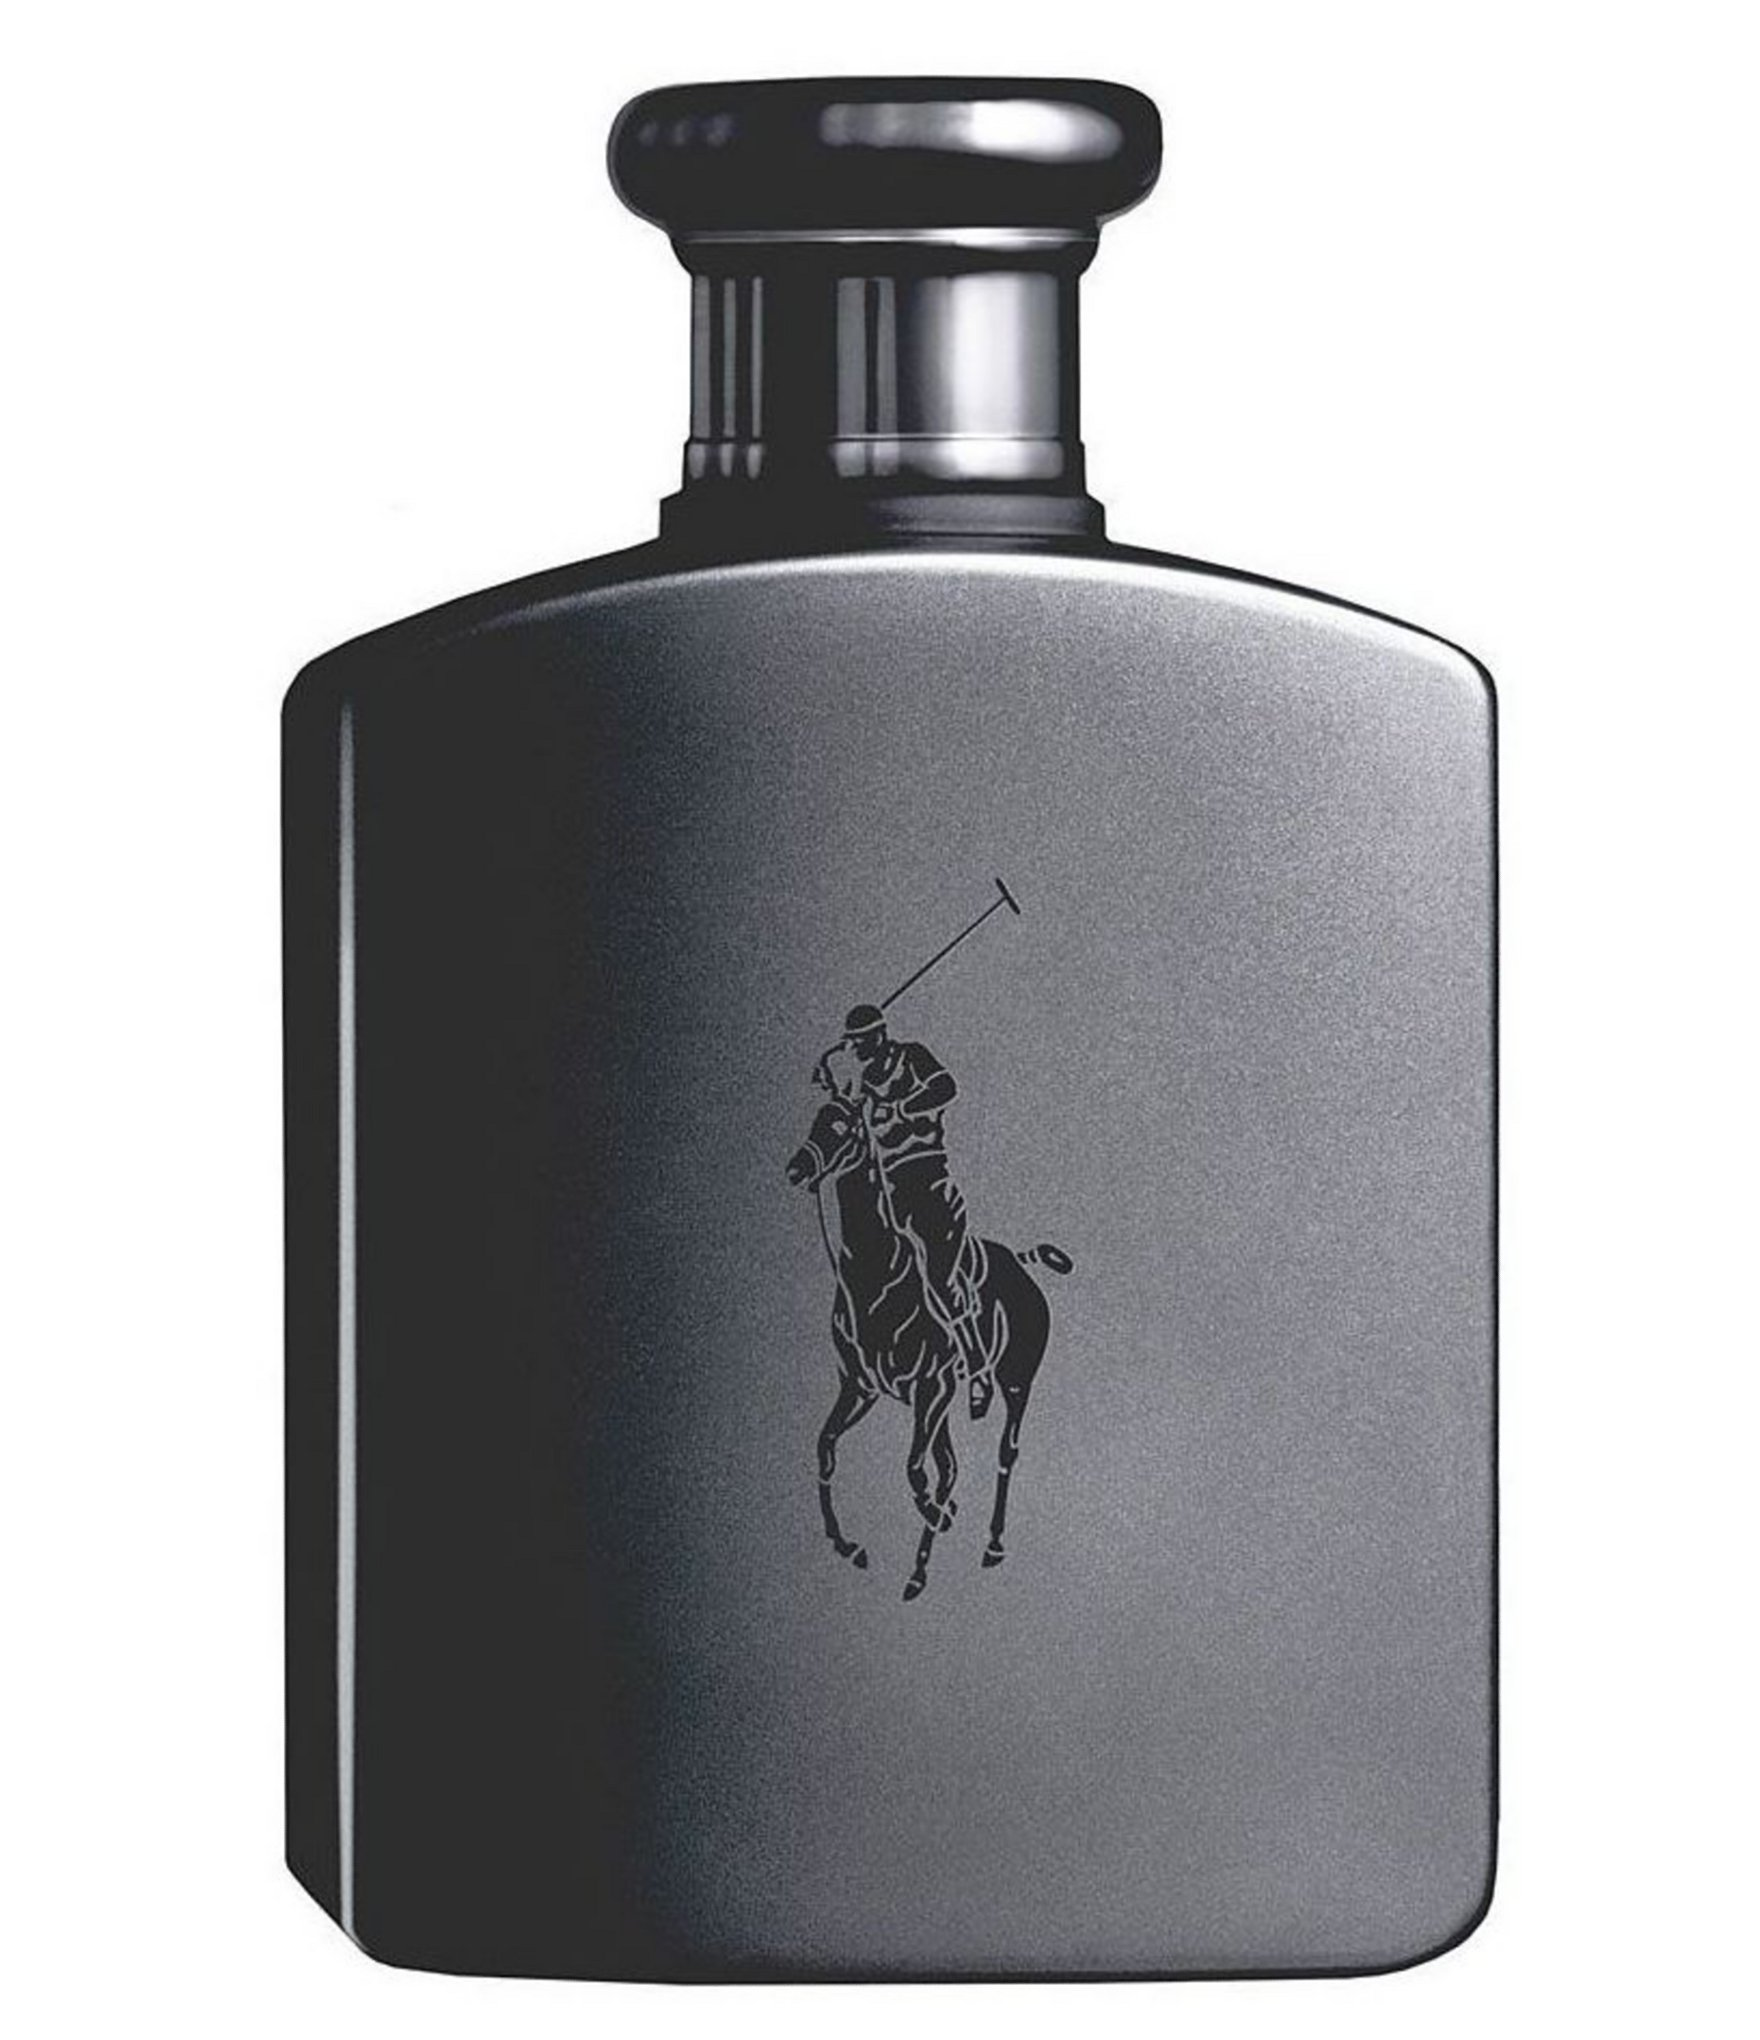 Nước hoa nam Polo Double Black 125 ml